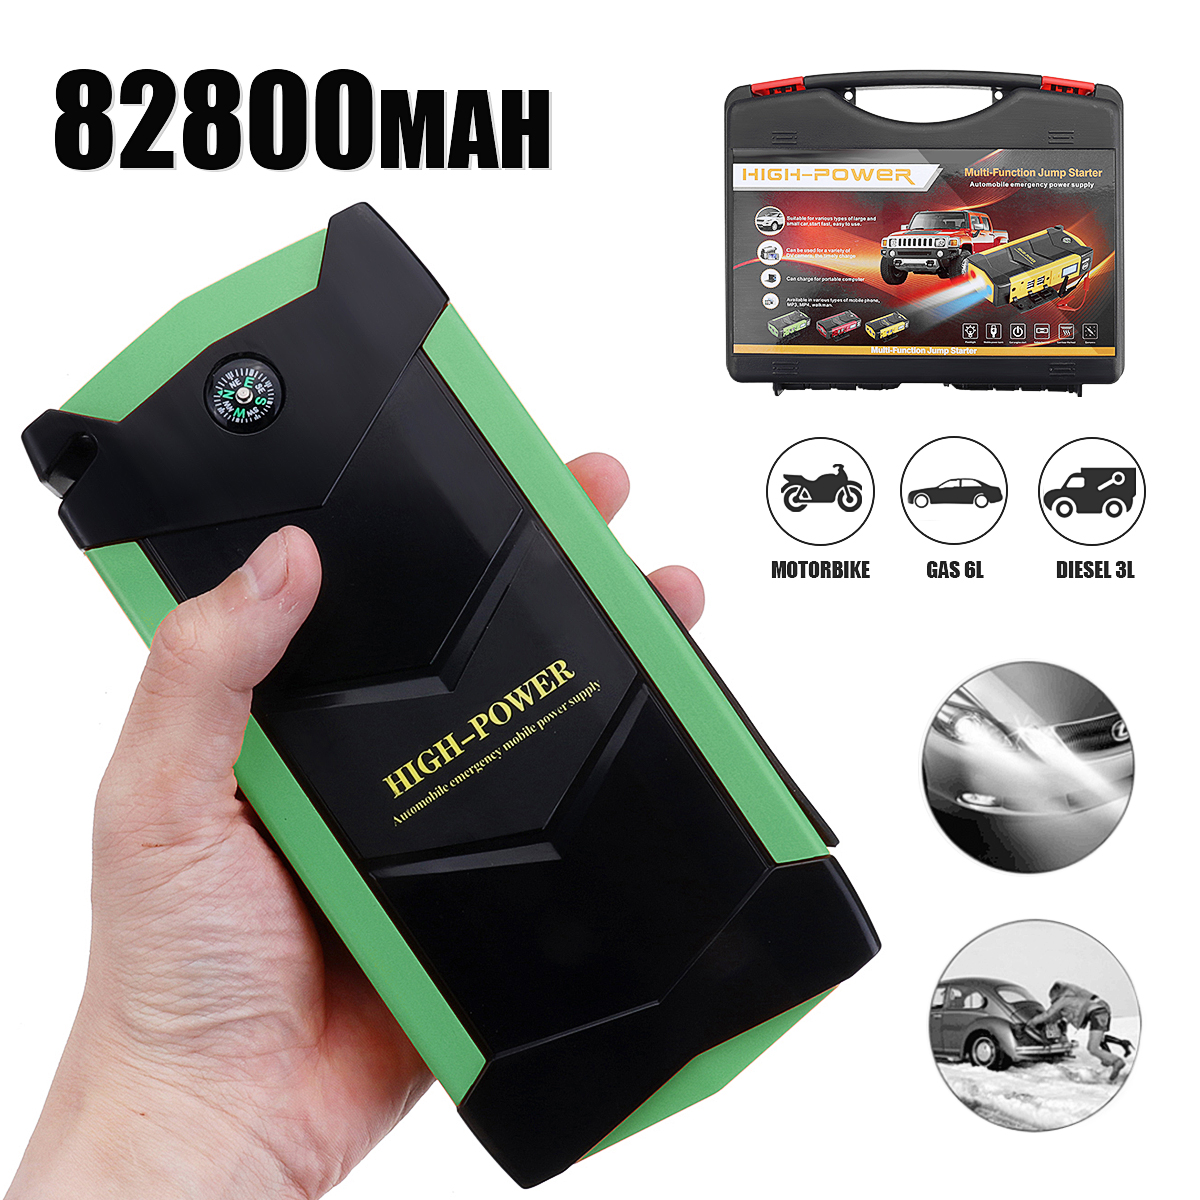 12V 82800mAh 4USB High Power Car Jump Starter Battery Charger Starting Car Booster Power Bank Tool Kit For Auto Starting Device multifunction jump starter 89800mah 12v 4usb 600a portable car battery booster charger booster power bank starting device